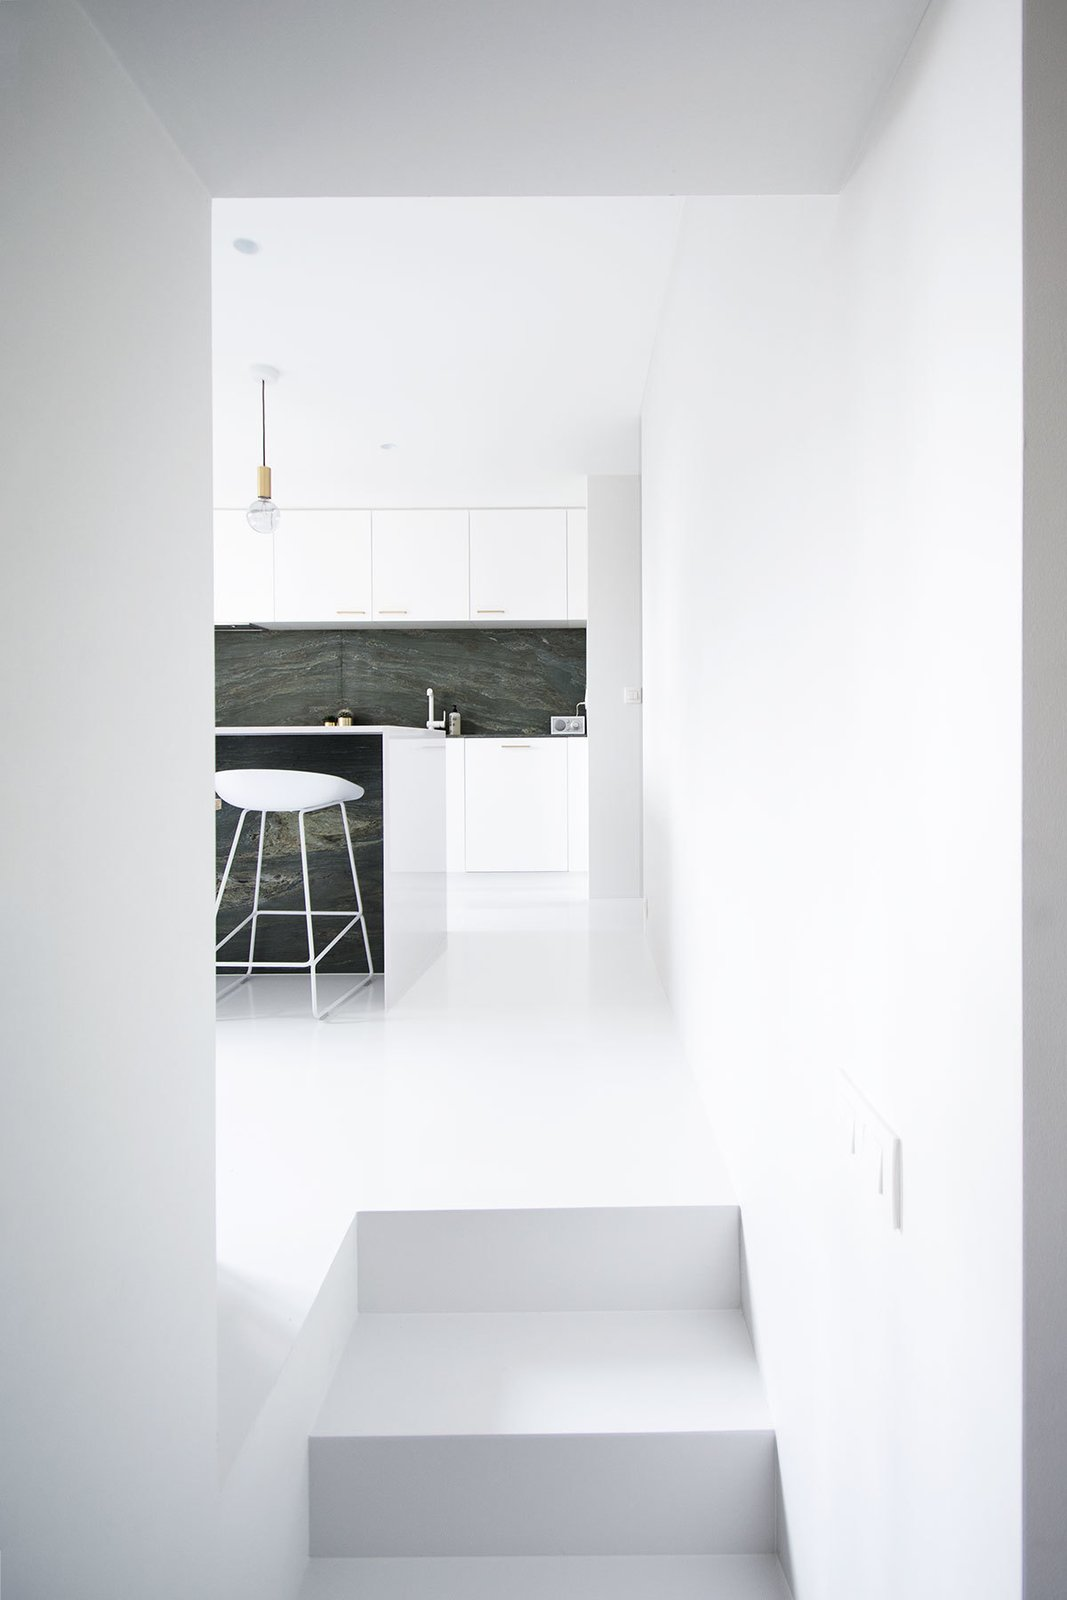 Photo 2 of 11 in 10 Minimalist and Monochromatic Homes in Belgium from Niels & Annemie by Benoît Deneufbourg and la fabrika studio